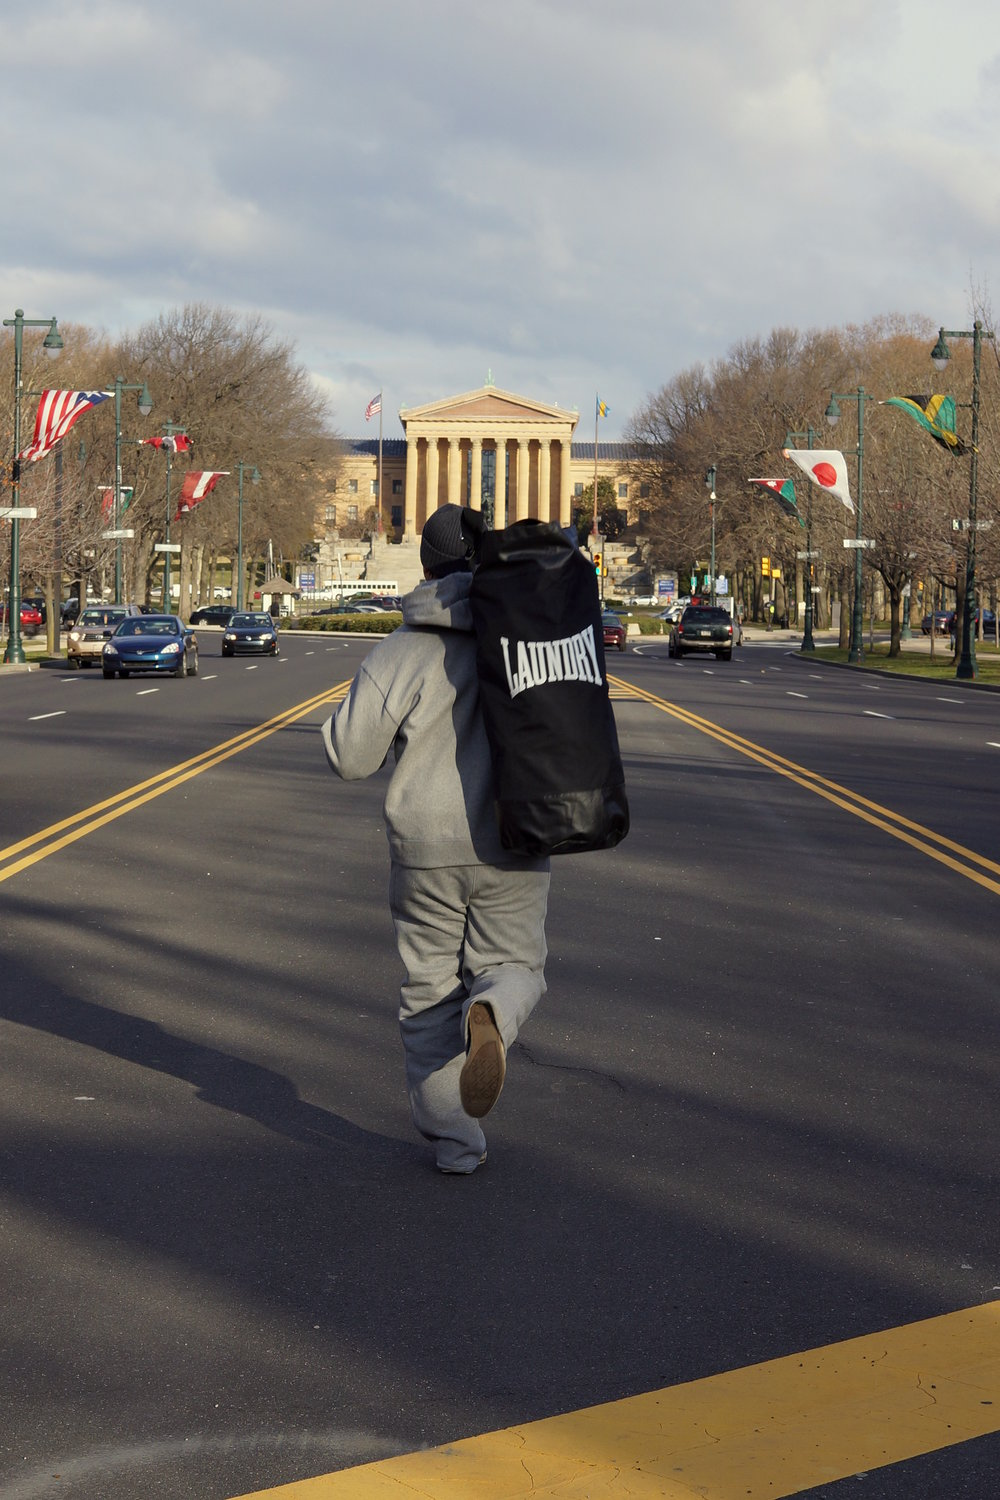 LAUNDRY PUNCH BAG-ROCKY-PARKWAY.jpg